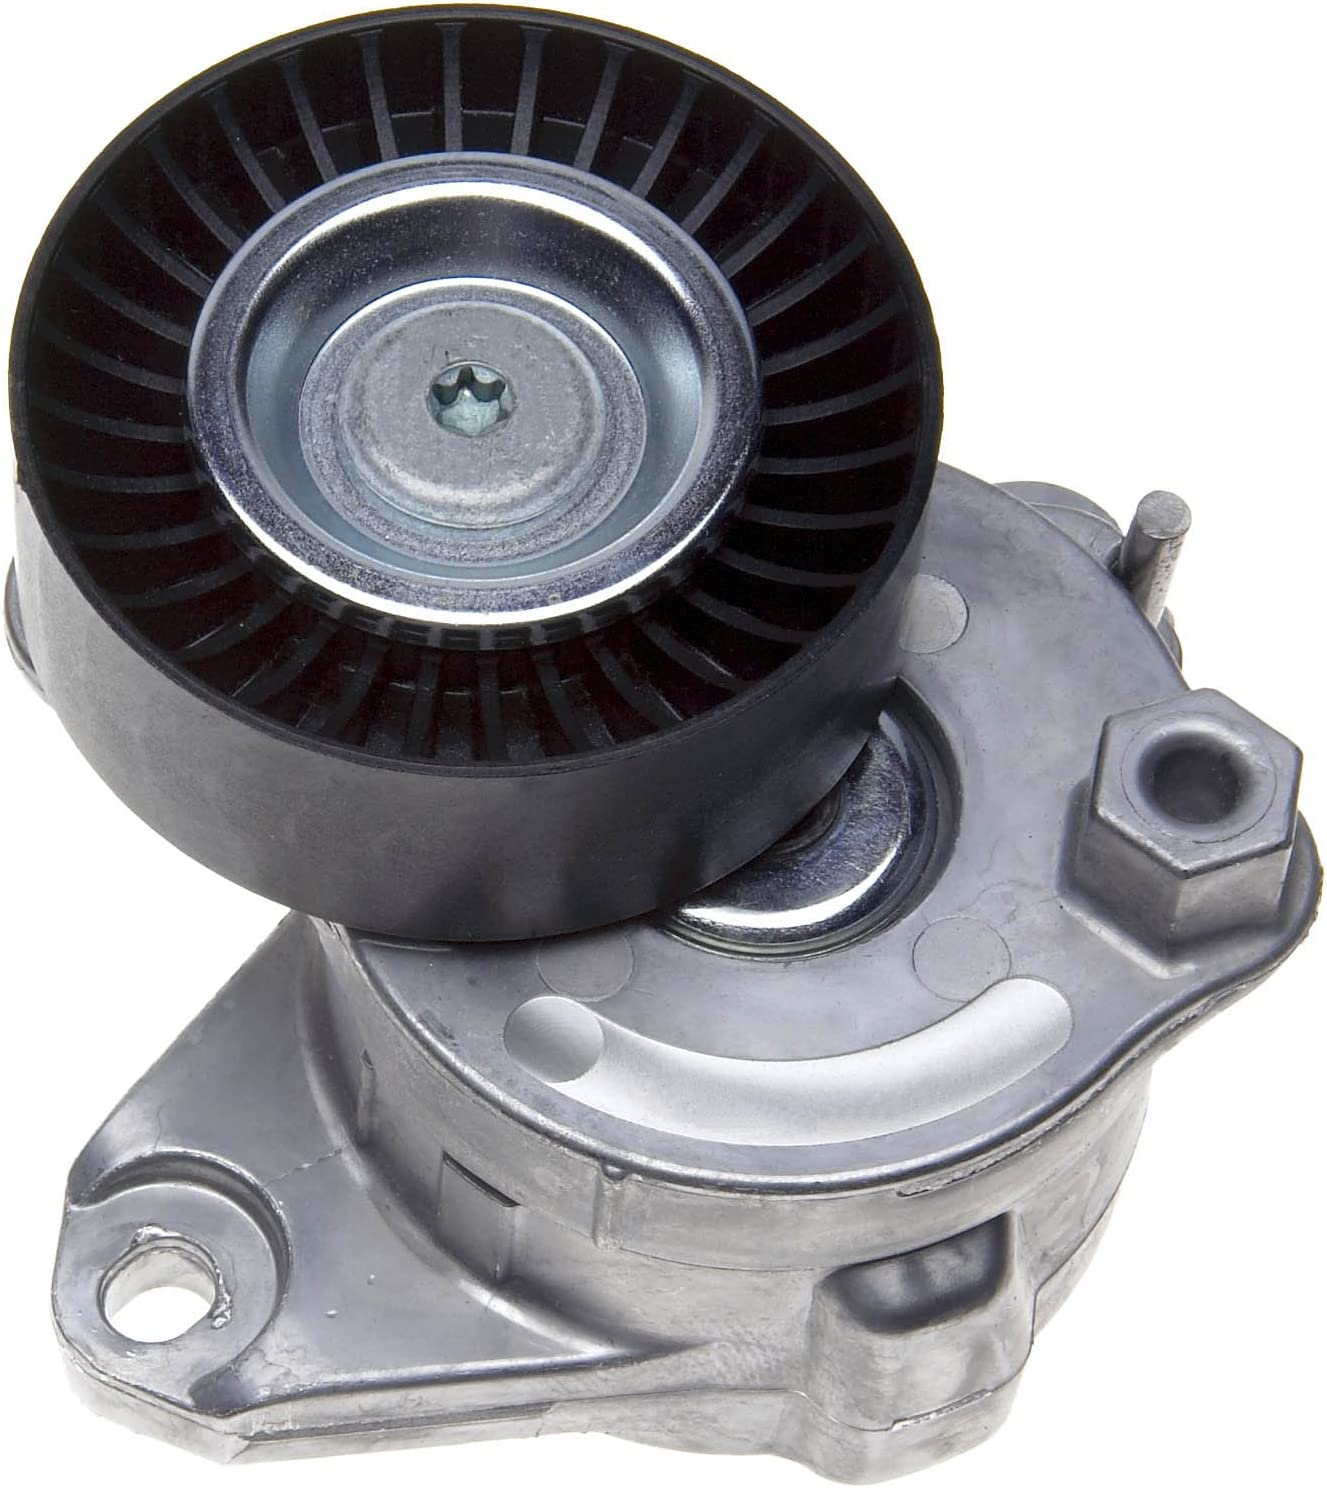 ACDelco 38319 Professional Automatic Belt Tensioner and Pulley Assembly